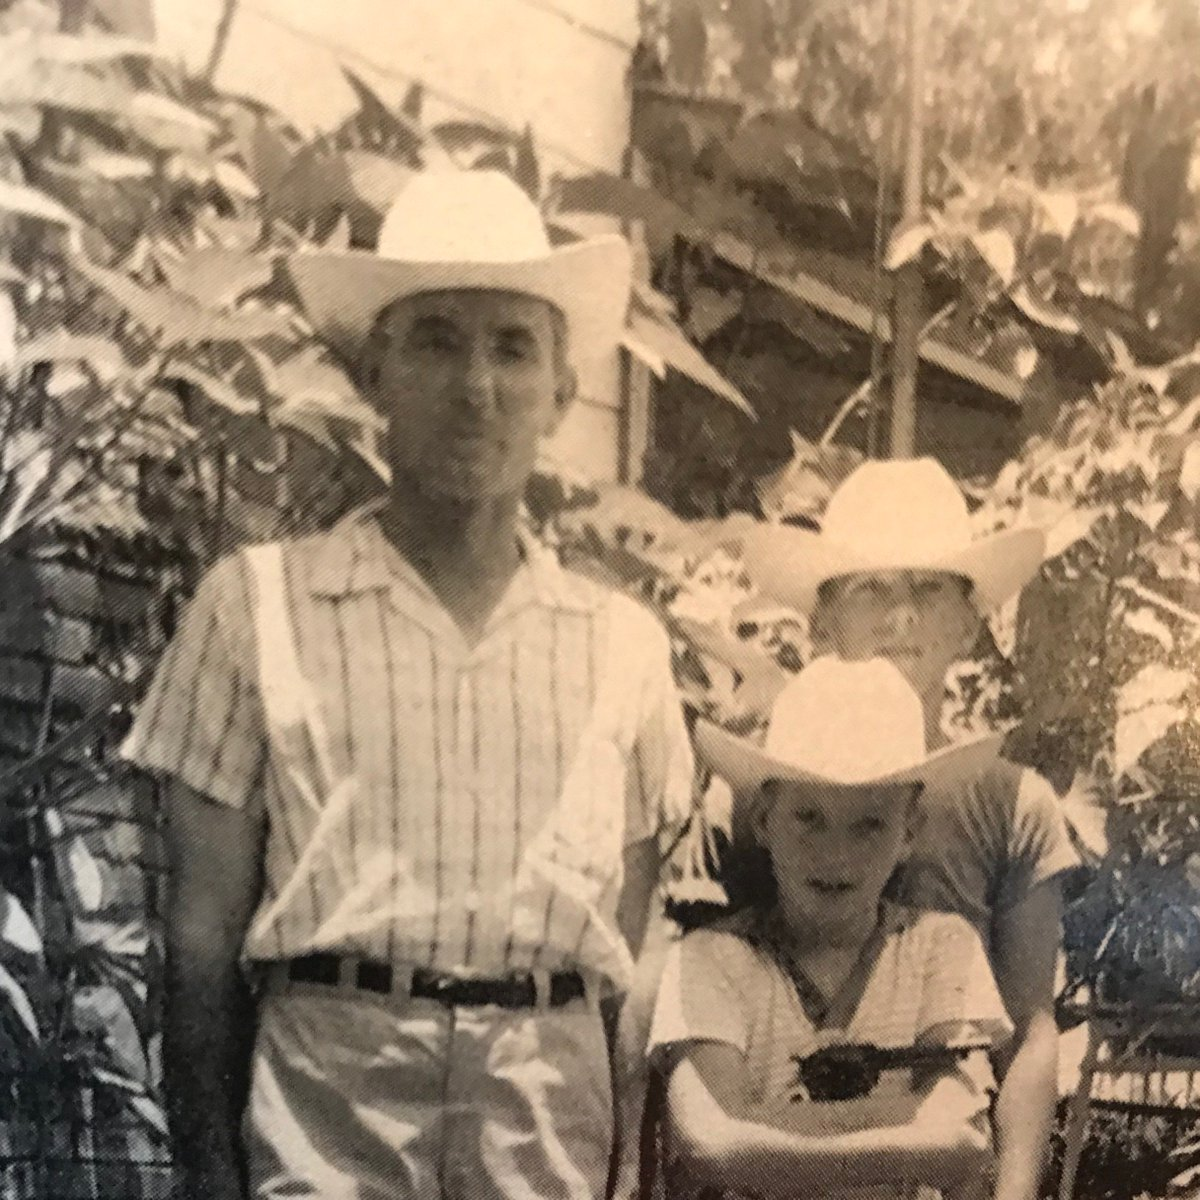 New hat day around 1958 with our dad Homer. Happy Father's Day. Hope you all have a great day. #FathersDay